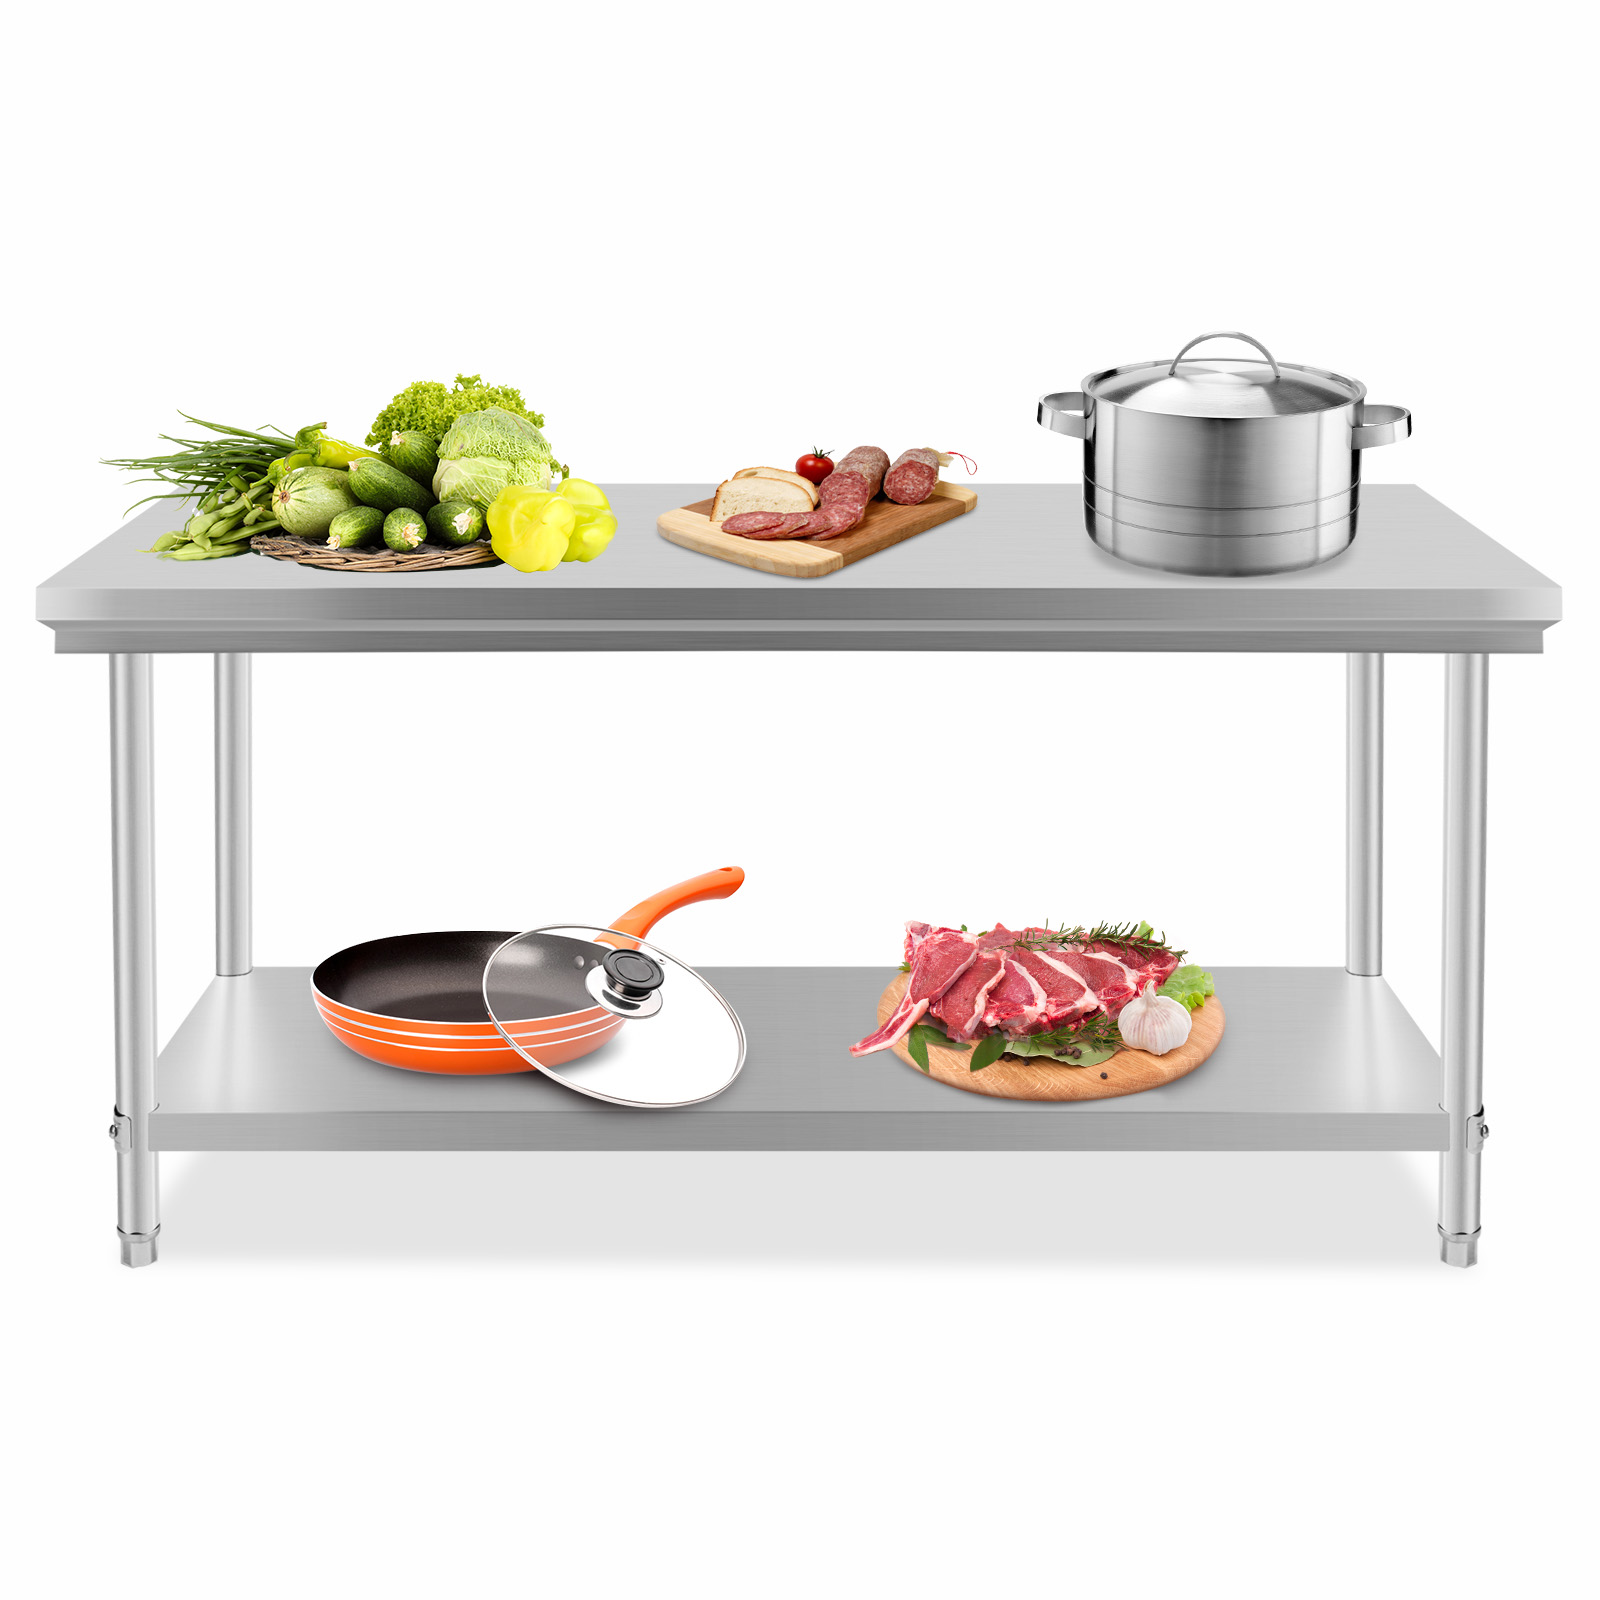 Stainless Steel mercial Kitchen Work Food Prep Table